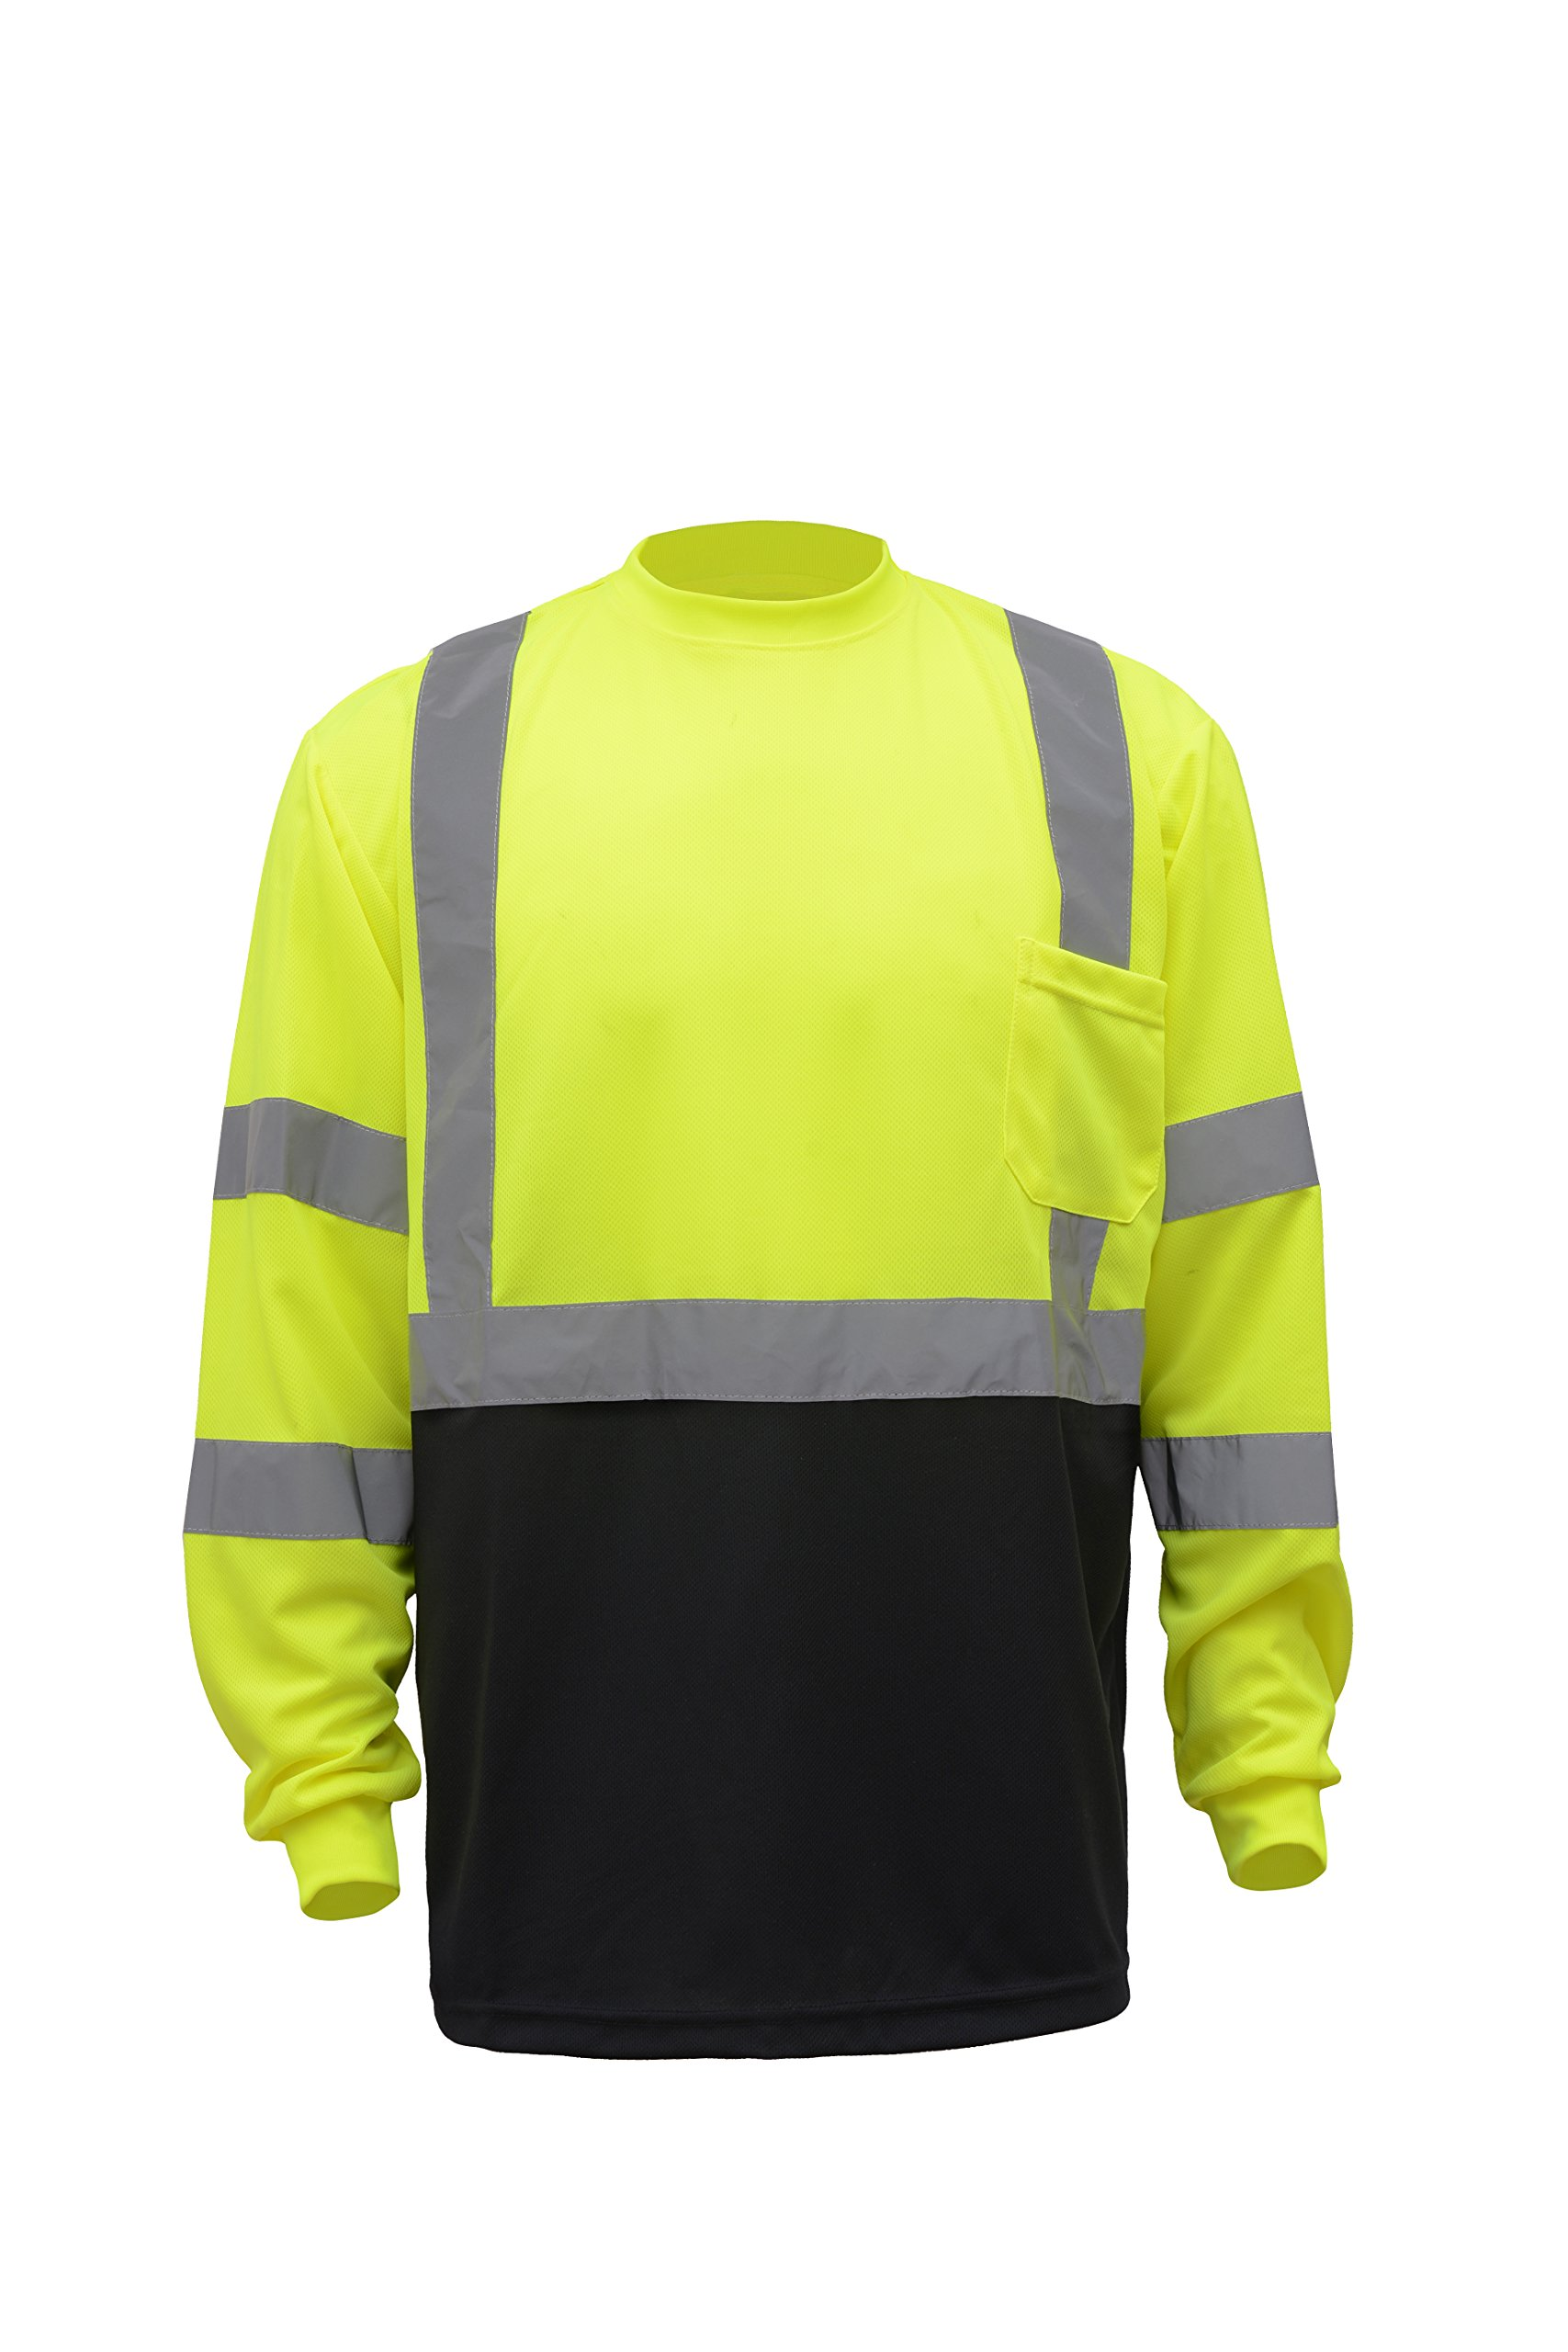 CJ Safety CJHVTS3003 ANSI Class 3 High Vis Long Sleeve Black Bottom Safety Shirt Moisture Wicking Mesh (2XL, Green)